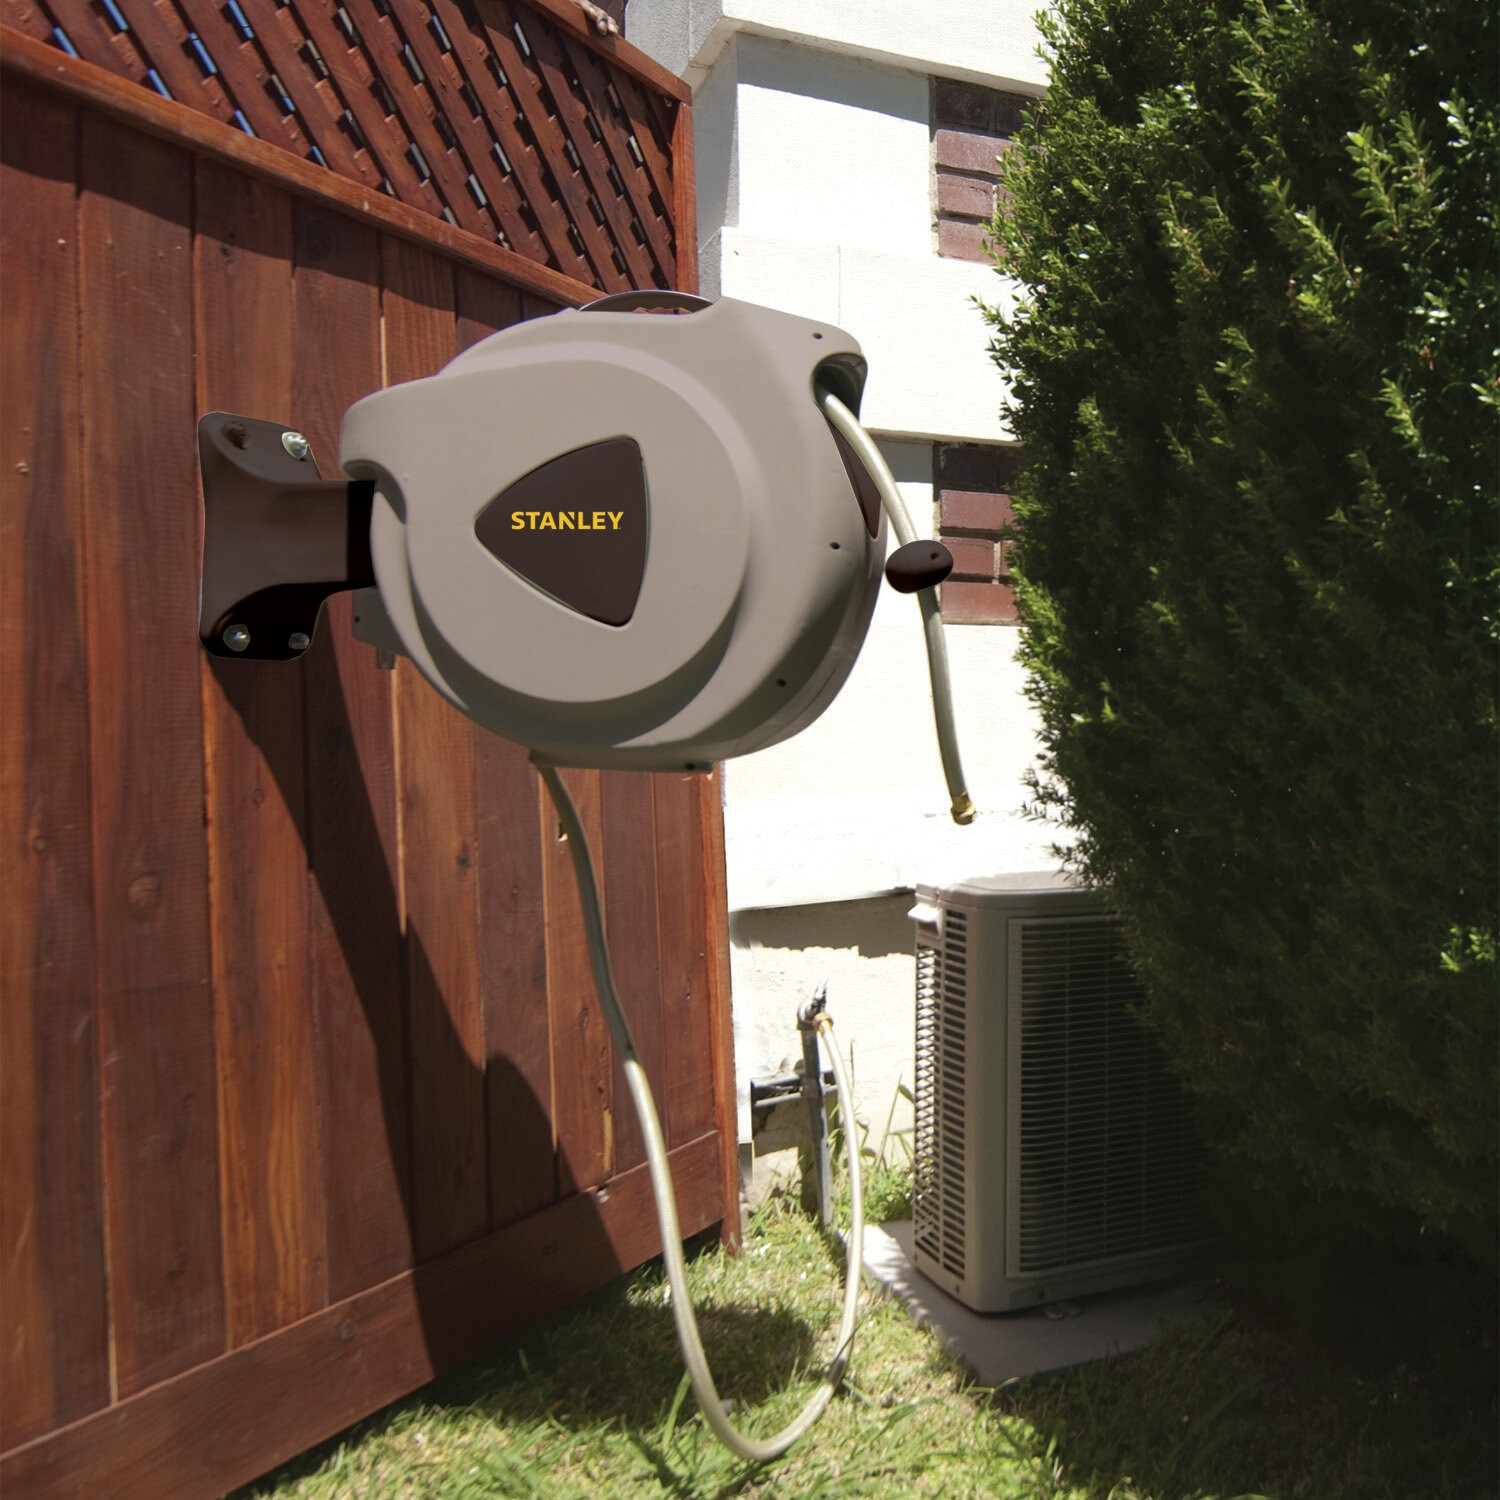 Stanley Plastic Wall Mounted Hose Reel